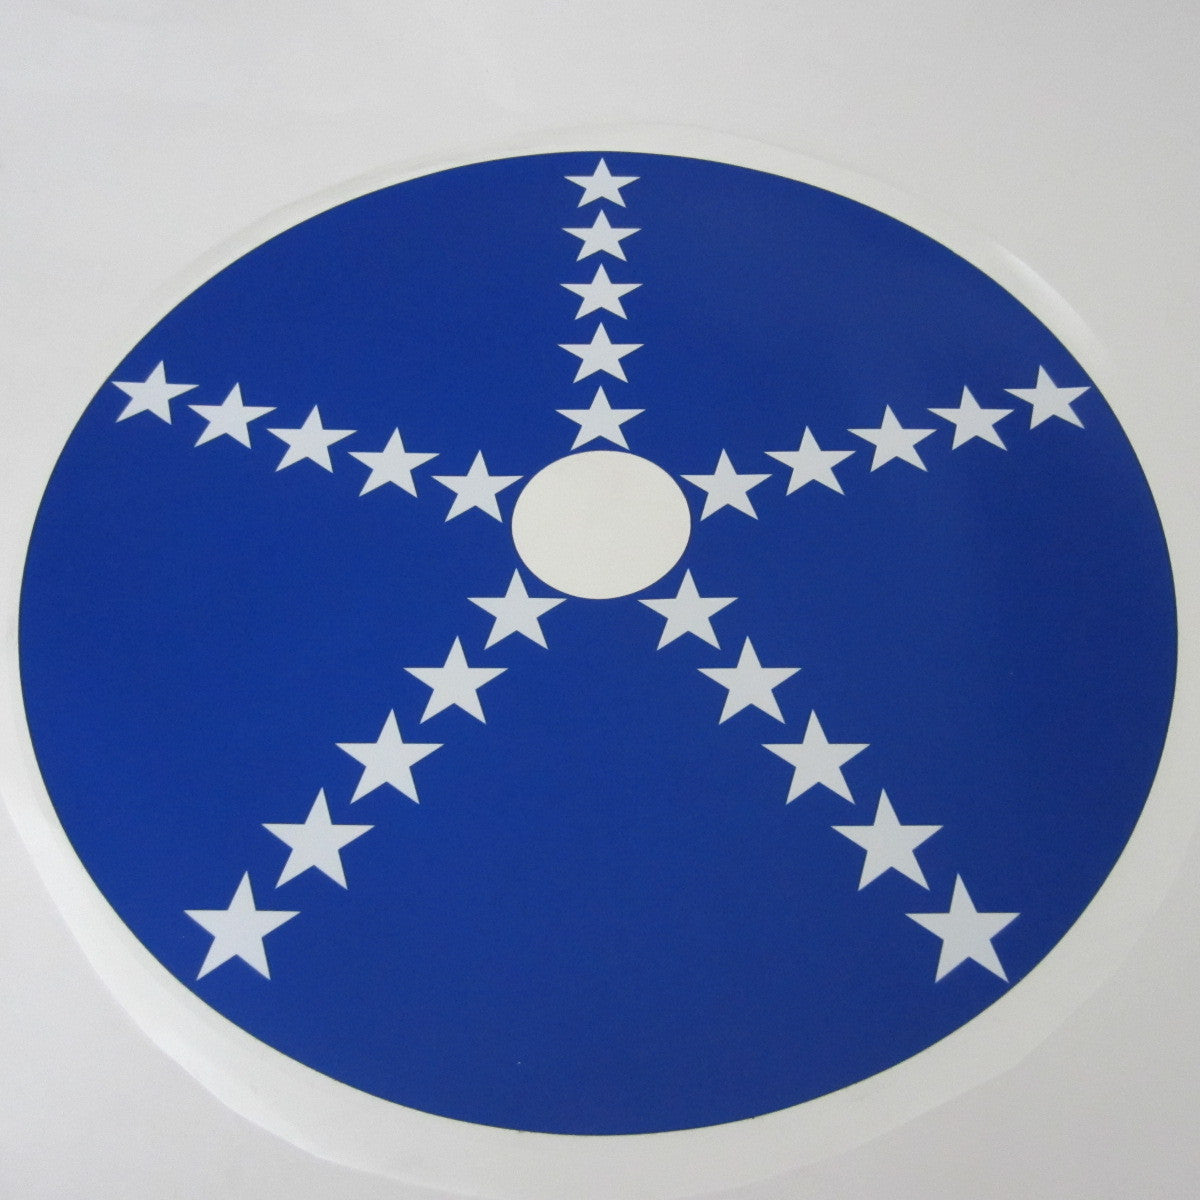 NXT Wheel Decal Set Blue & White